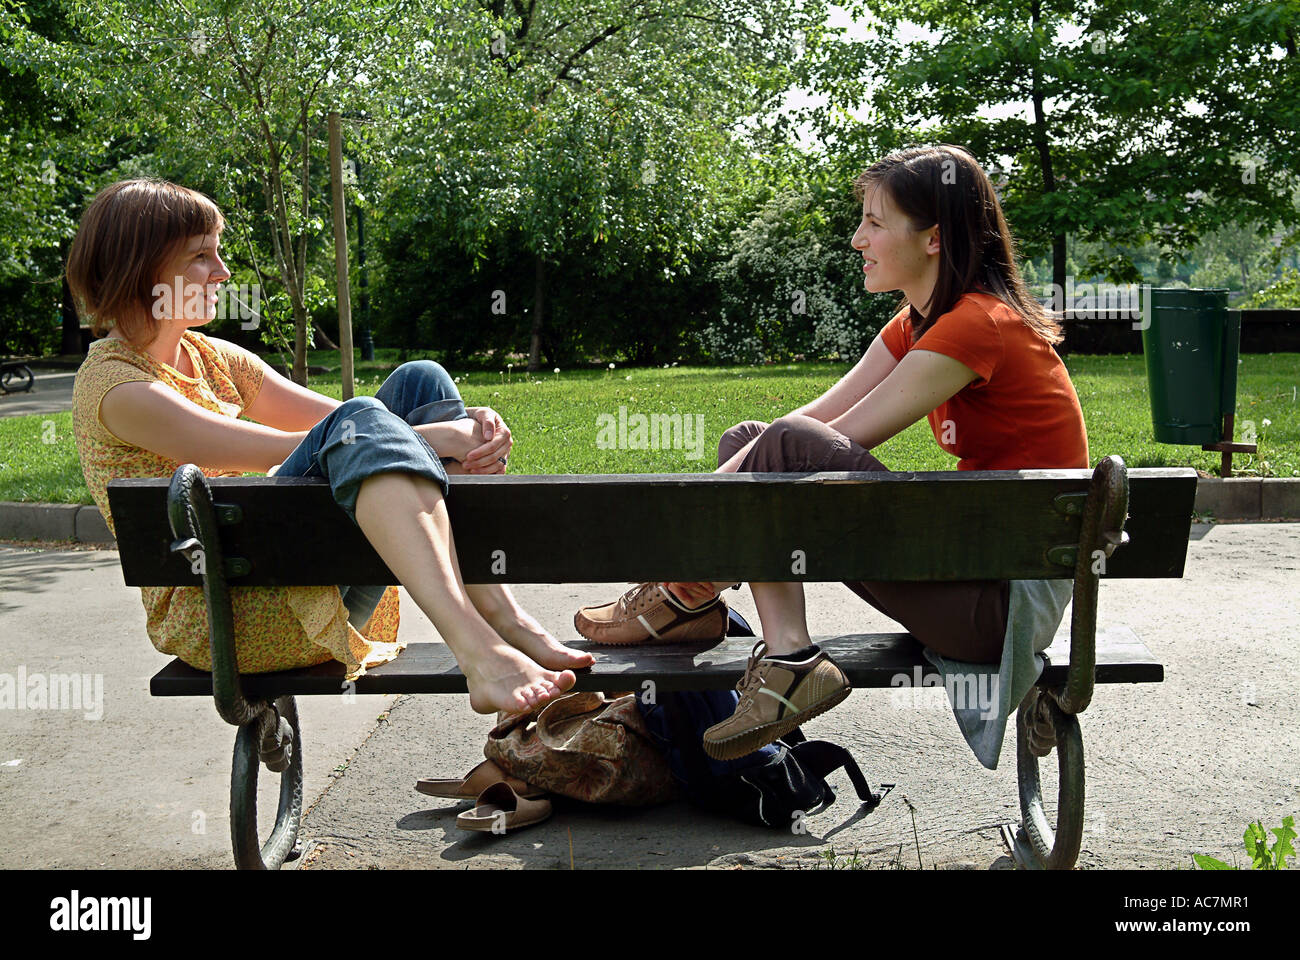 Two girls talking to each other on a bench - Stock Image